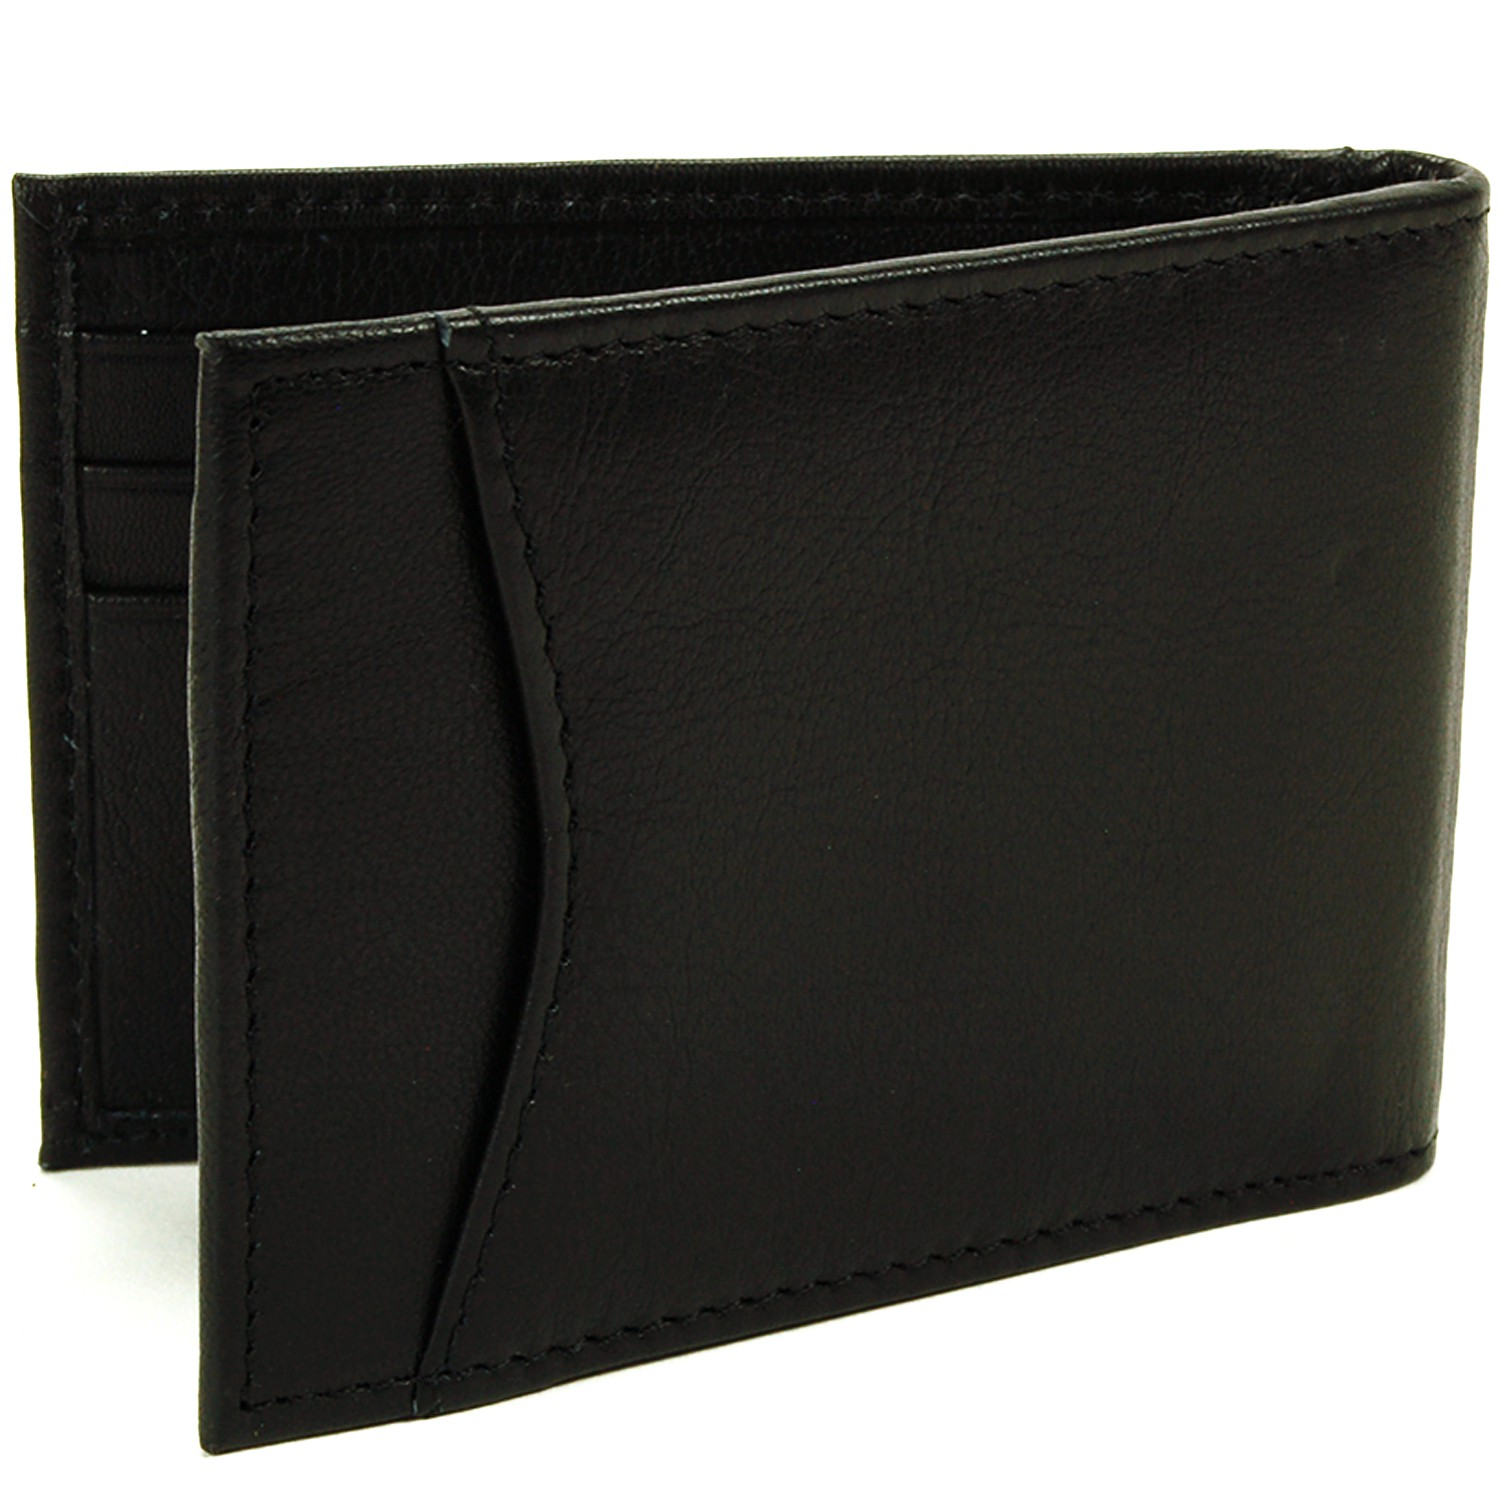 Alpine-Swiss-Mens-Bifold-Money-Clip-Spring-Loaded-Leather-ID-Front-Pocket-Wallet thumbnail 21